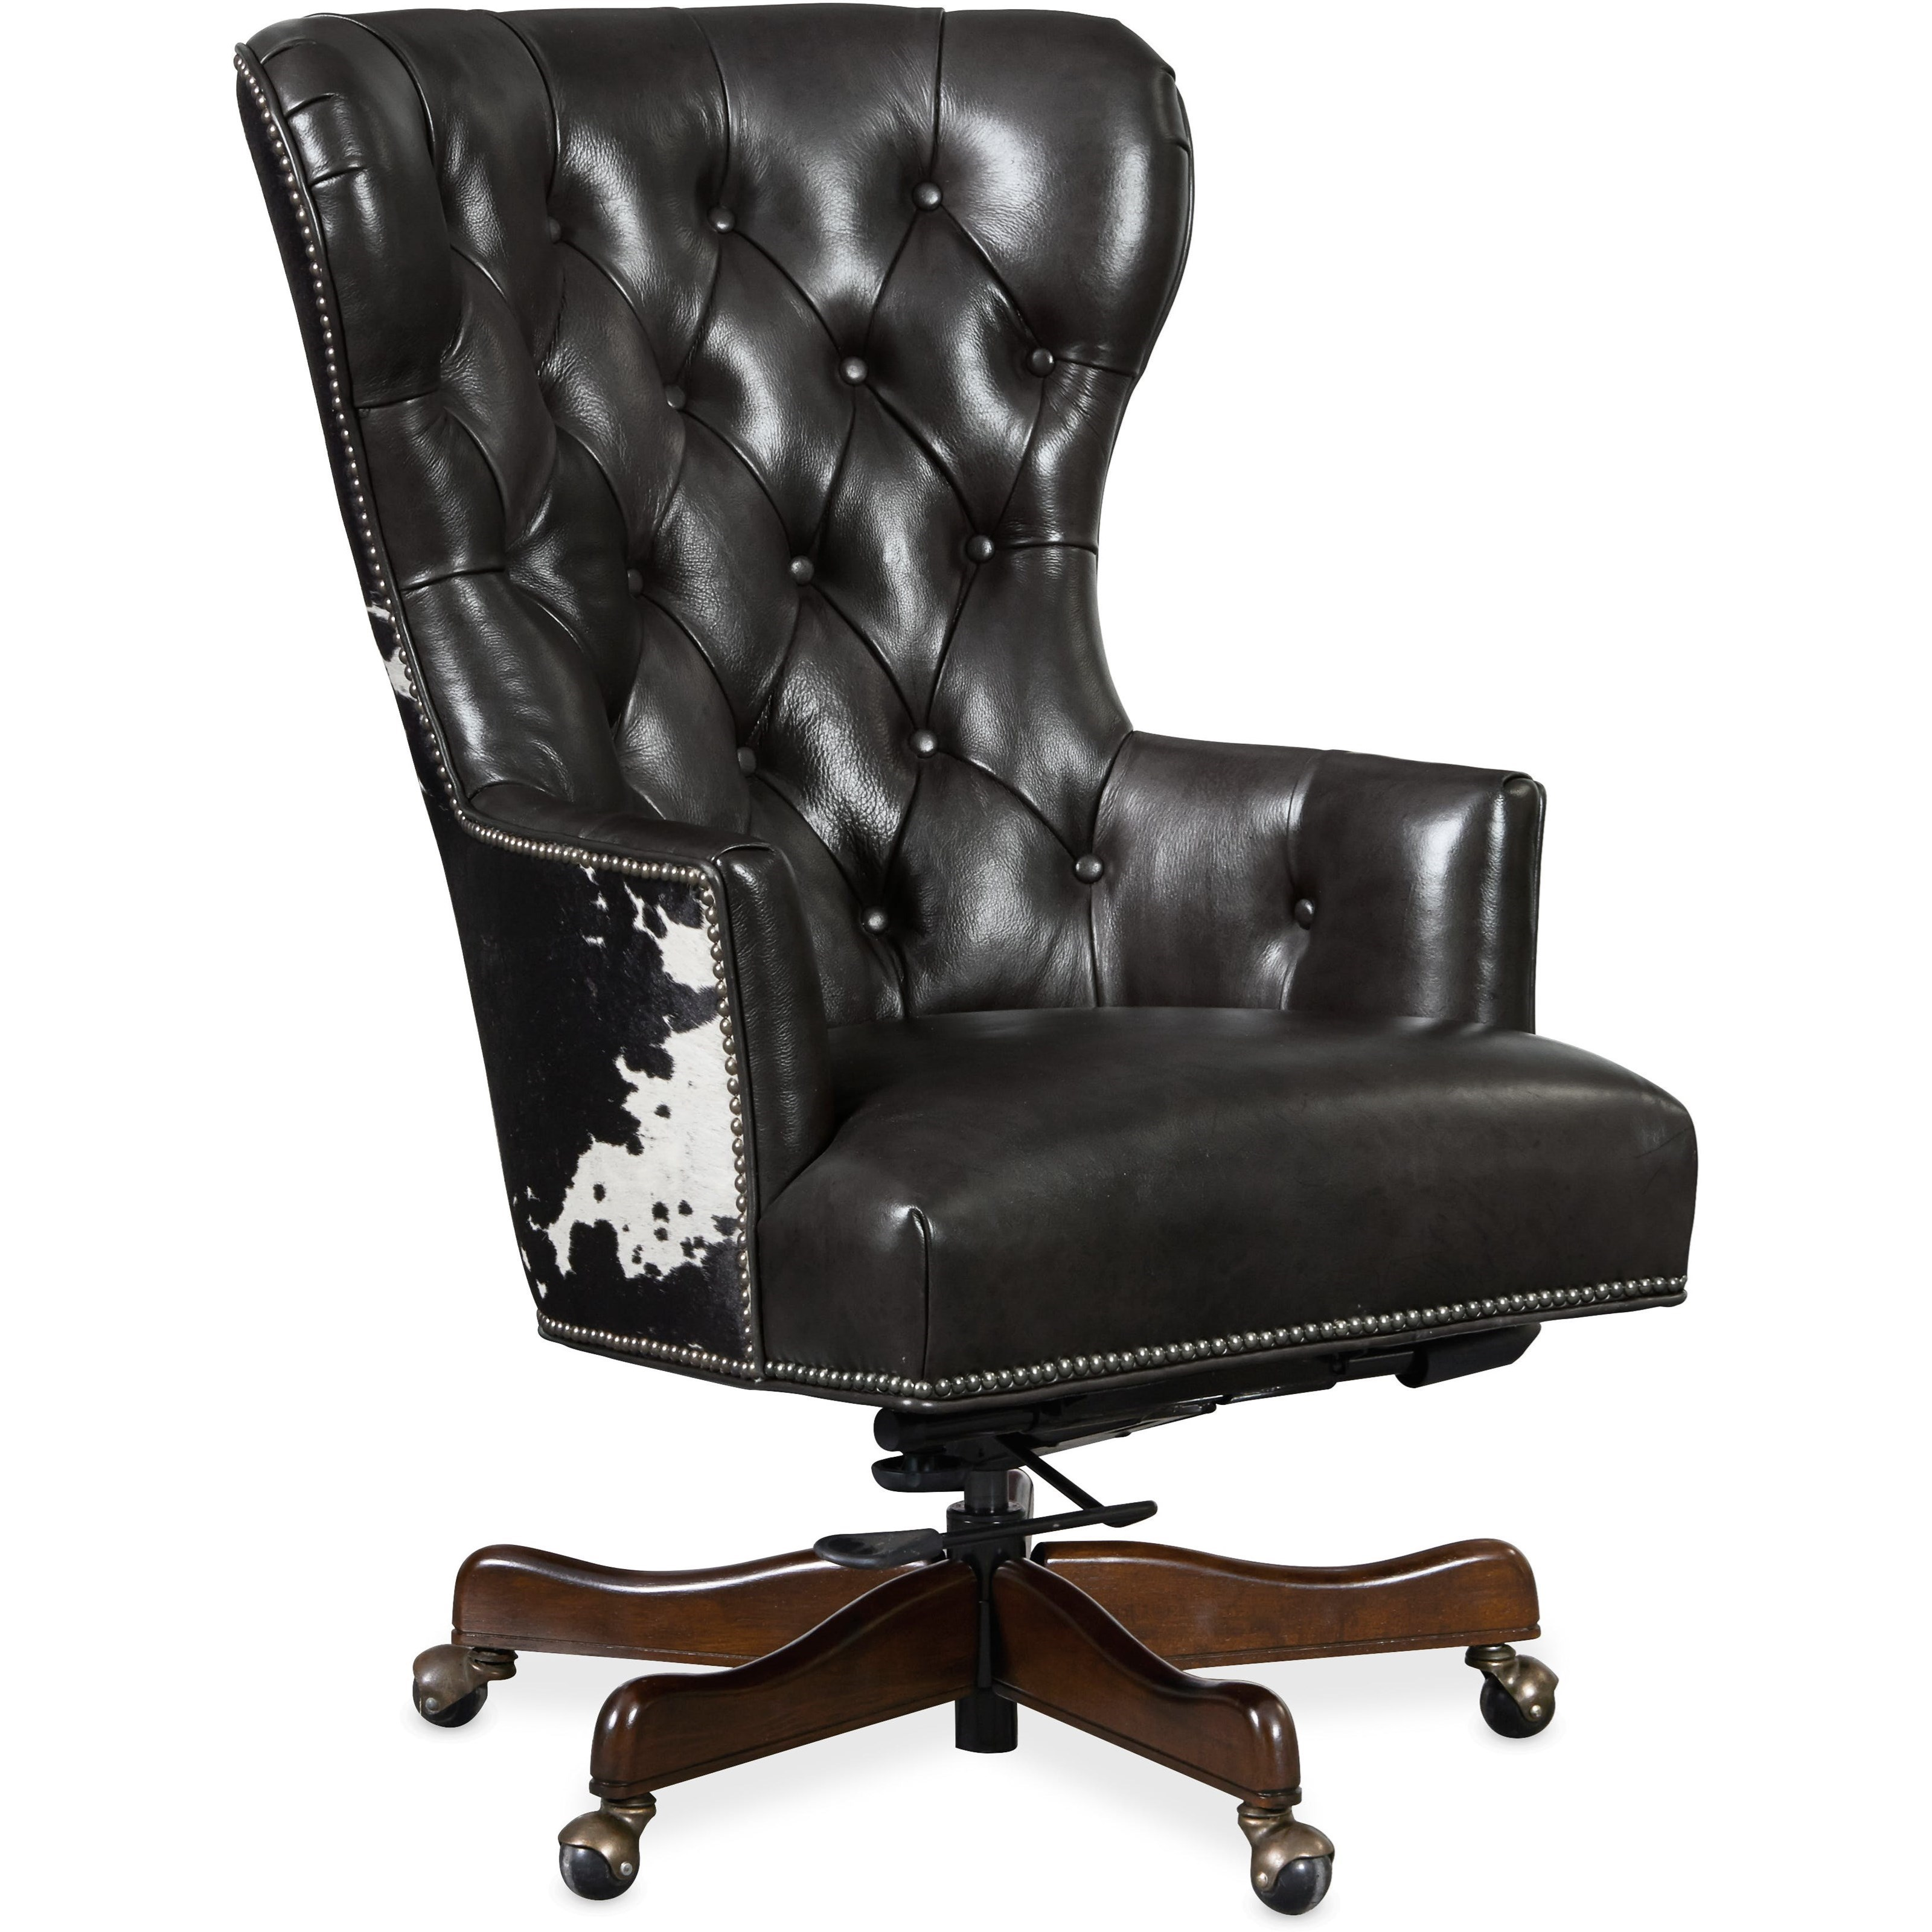 Home Office Club Executive Seating Traditional Home Office Chair With Tufting By Hooker Furniture At Dunk Bright Furniture